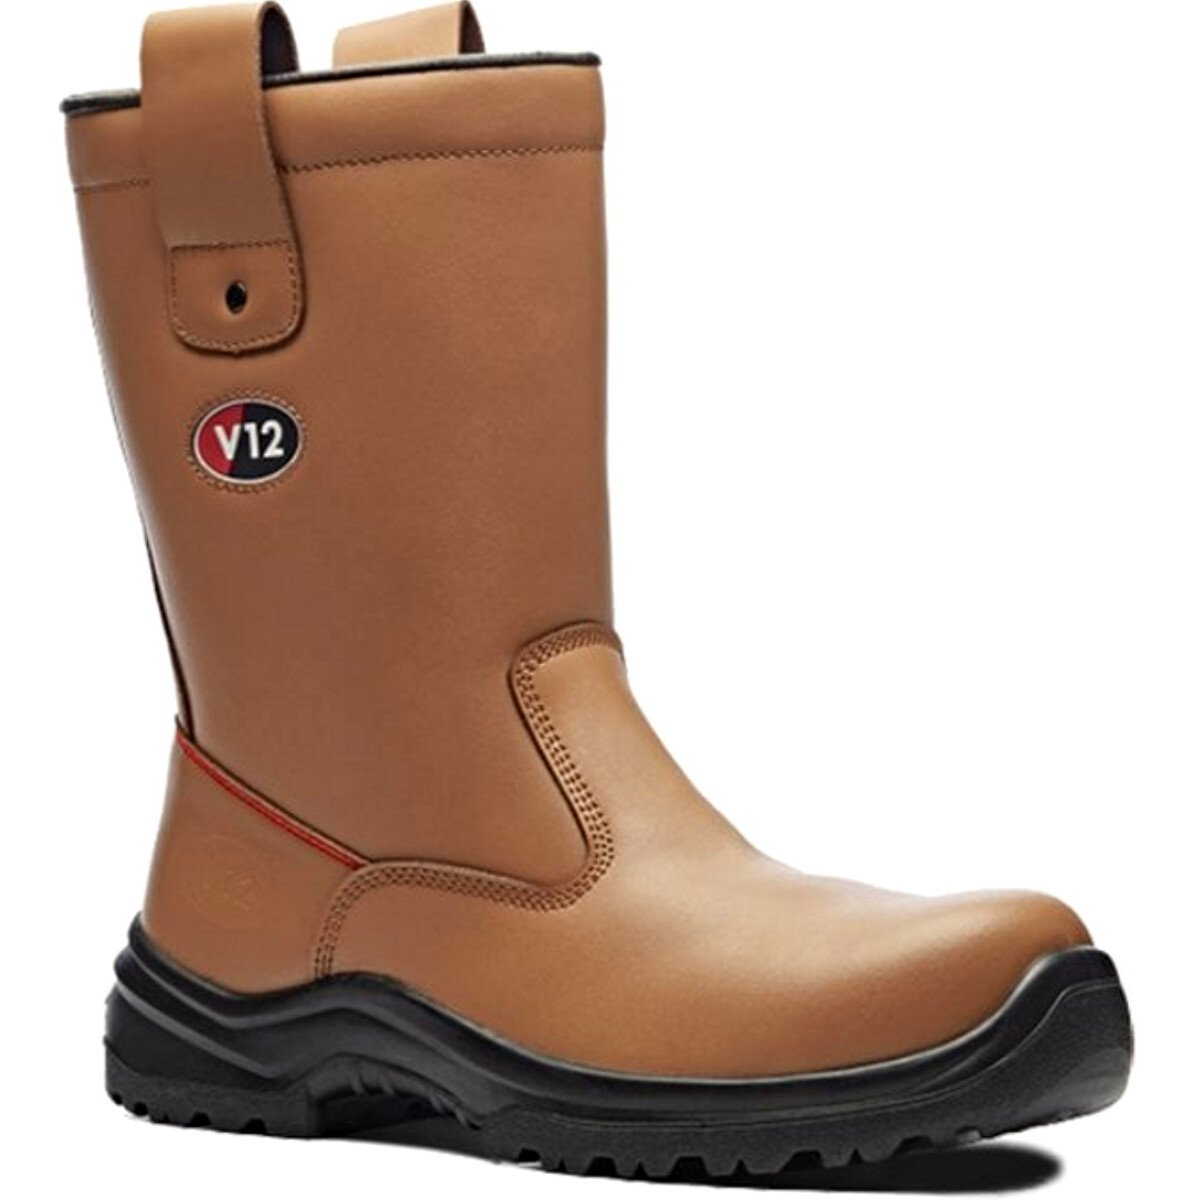 V12 Vtech V6816.01 Polar STS Tan Fur Lined Leather Safety Rigger Boot S1P SRC